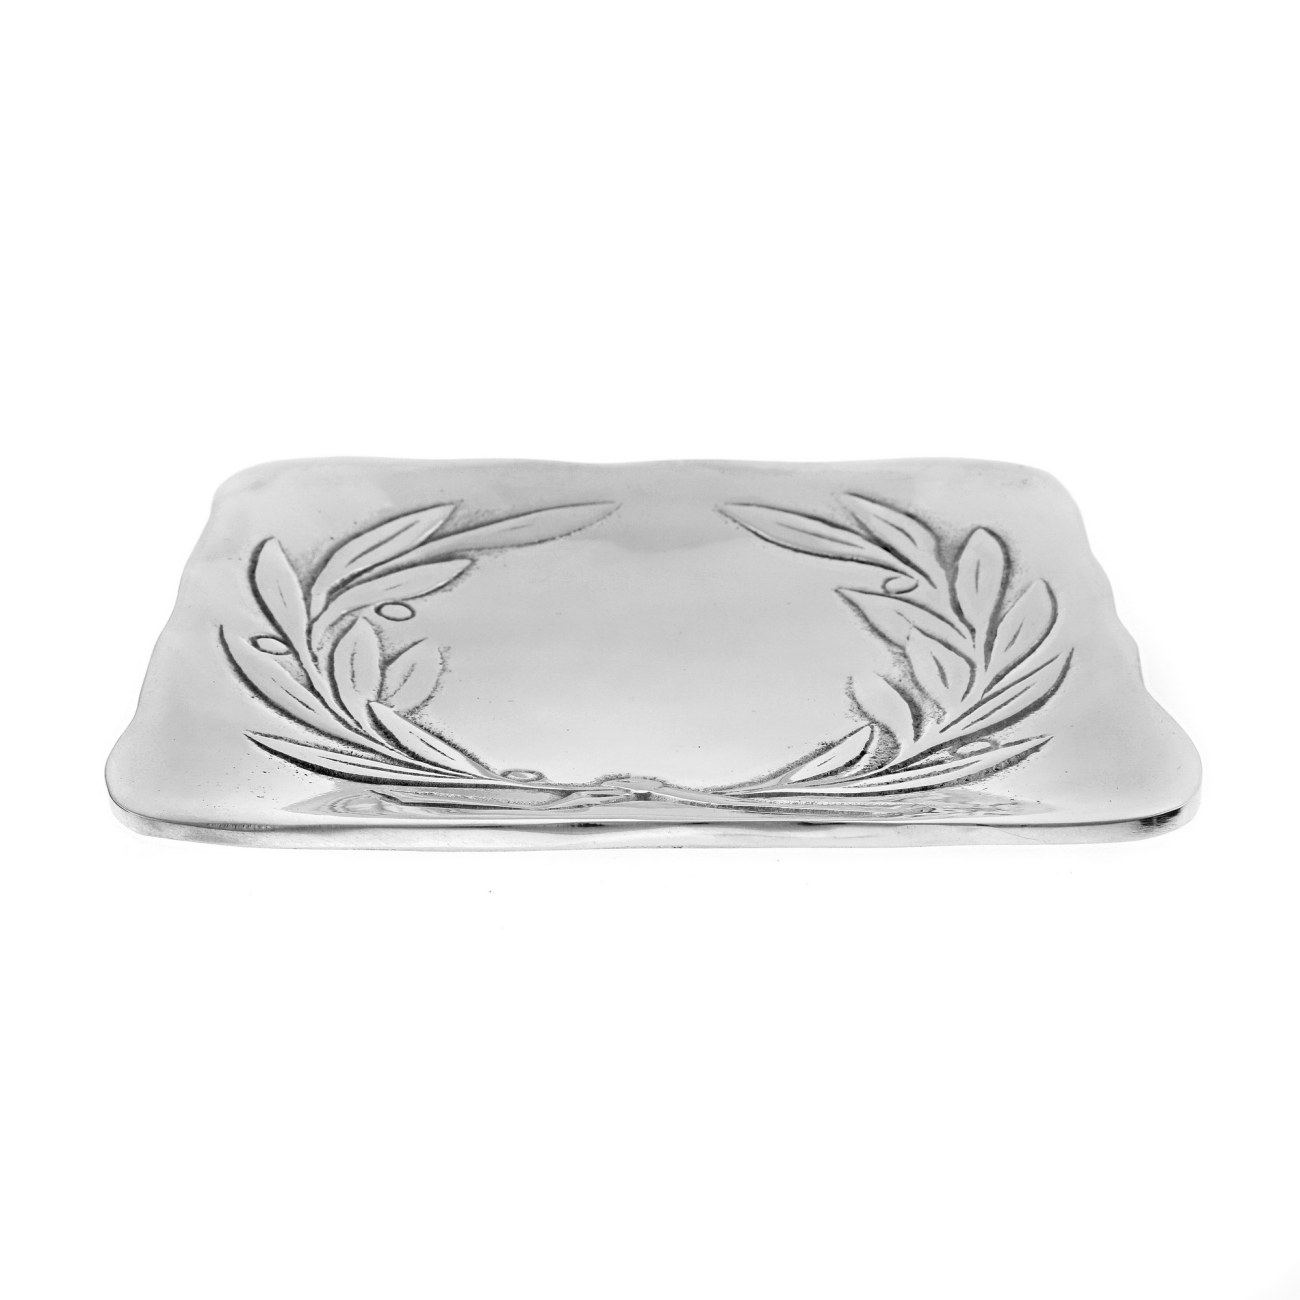 Decorative Metal Plate Engraved Olive Wreath Design Handmade Silver Color 17x17cm